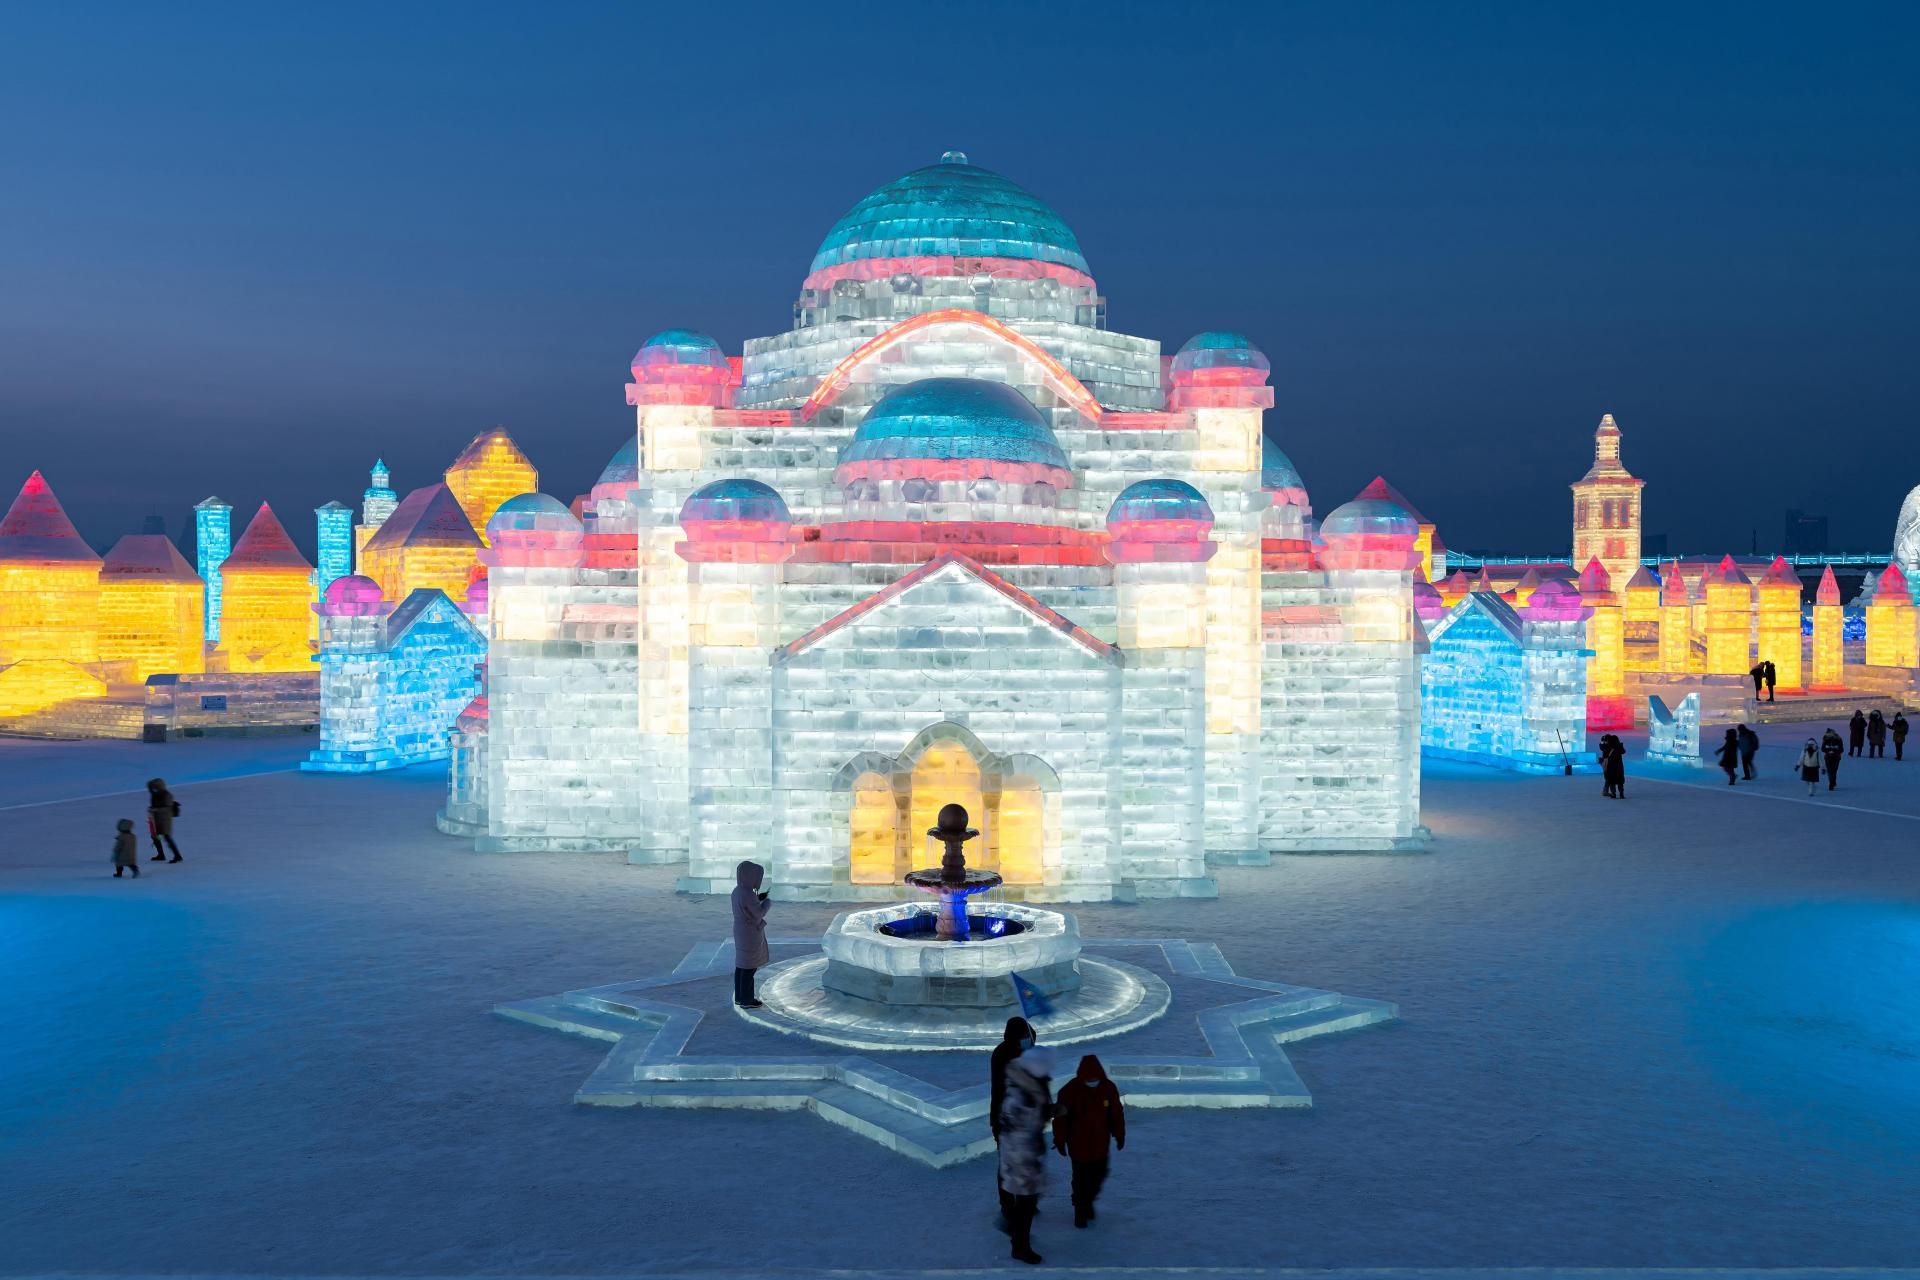 People look at ice sculptures at the Harbin Ice and Snow Festival in Harbin.